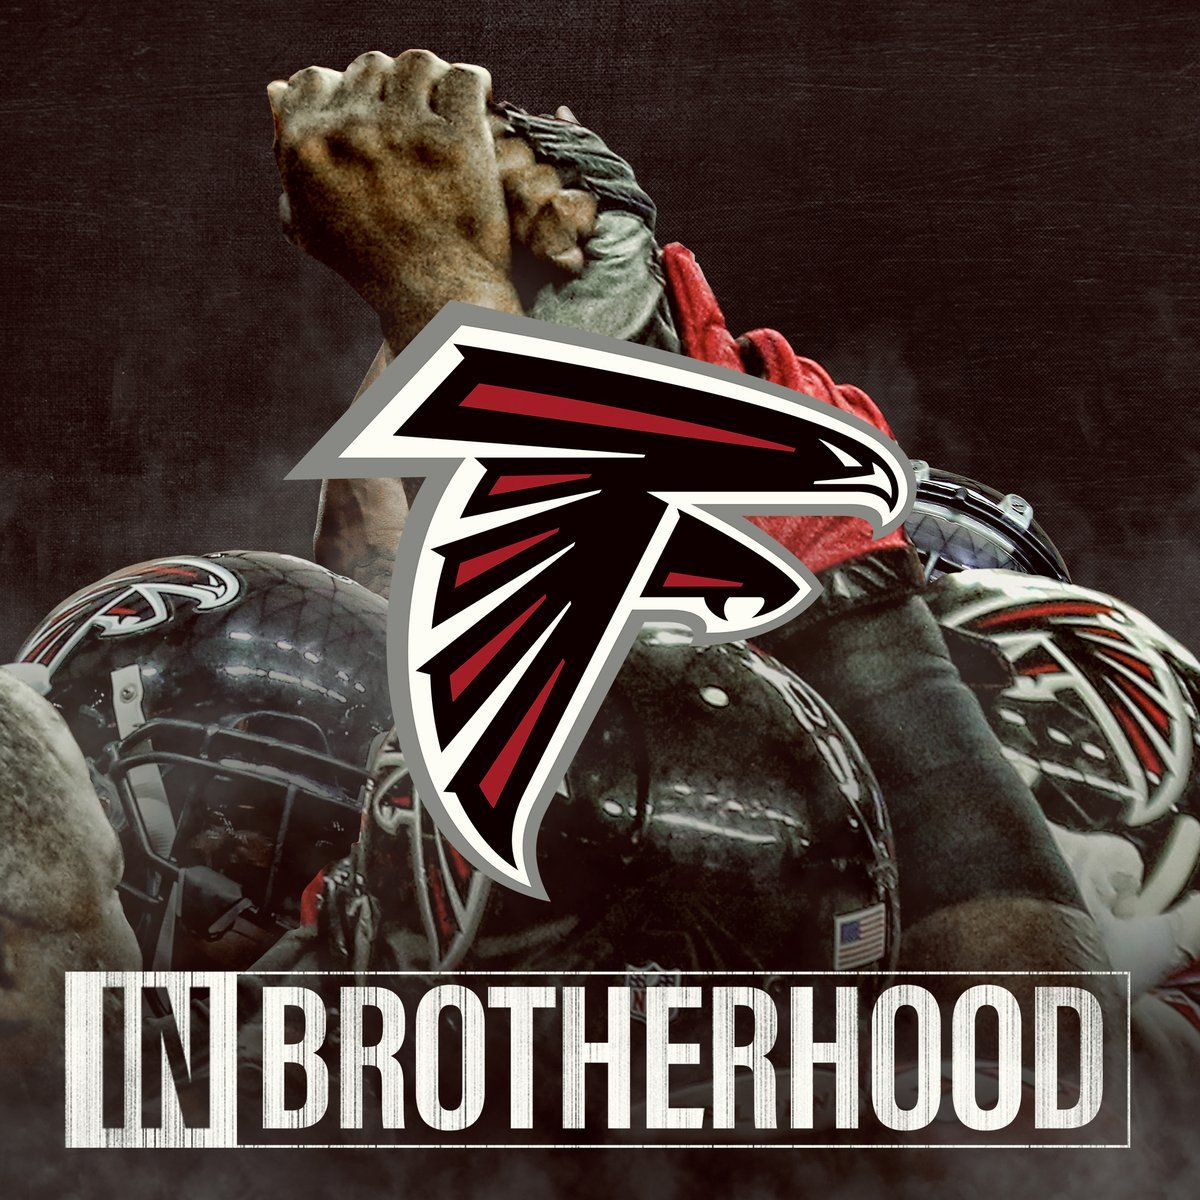 Atlanta Falcons Atlantafalcons Twitter Atlanta Falcons Football Atlanta Falcons